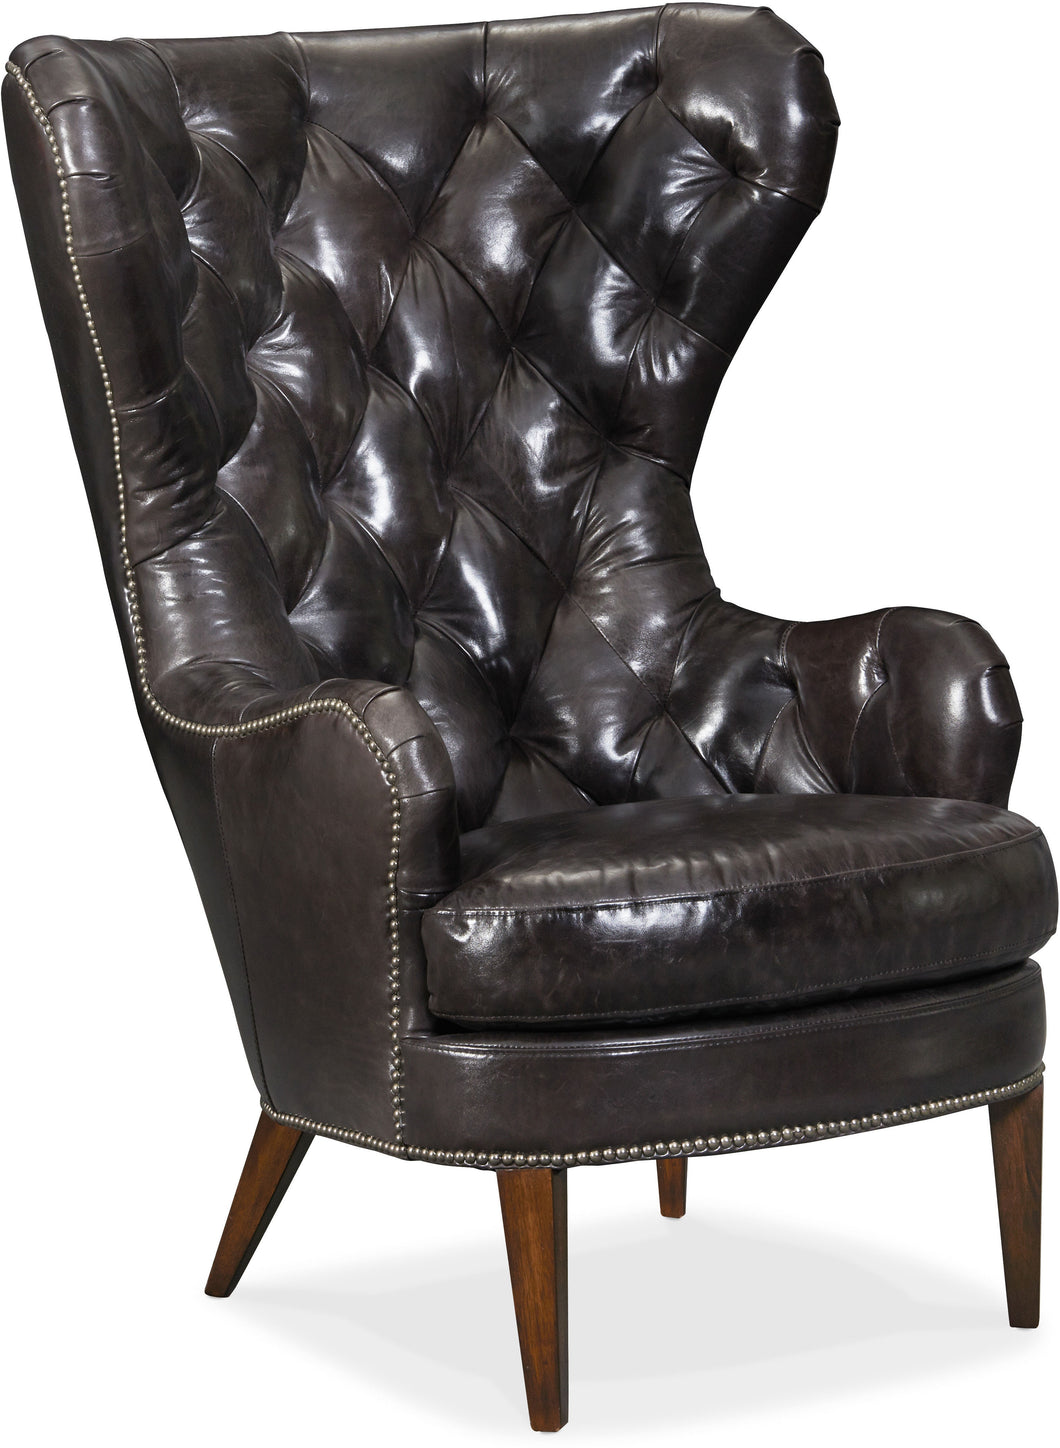 Hooker Furniture Living Room Souvereign Tufted Wing Chair - Dreamart Gallery